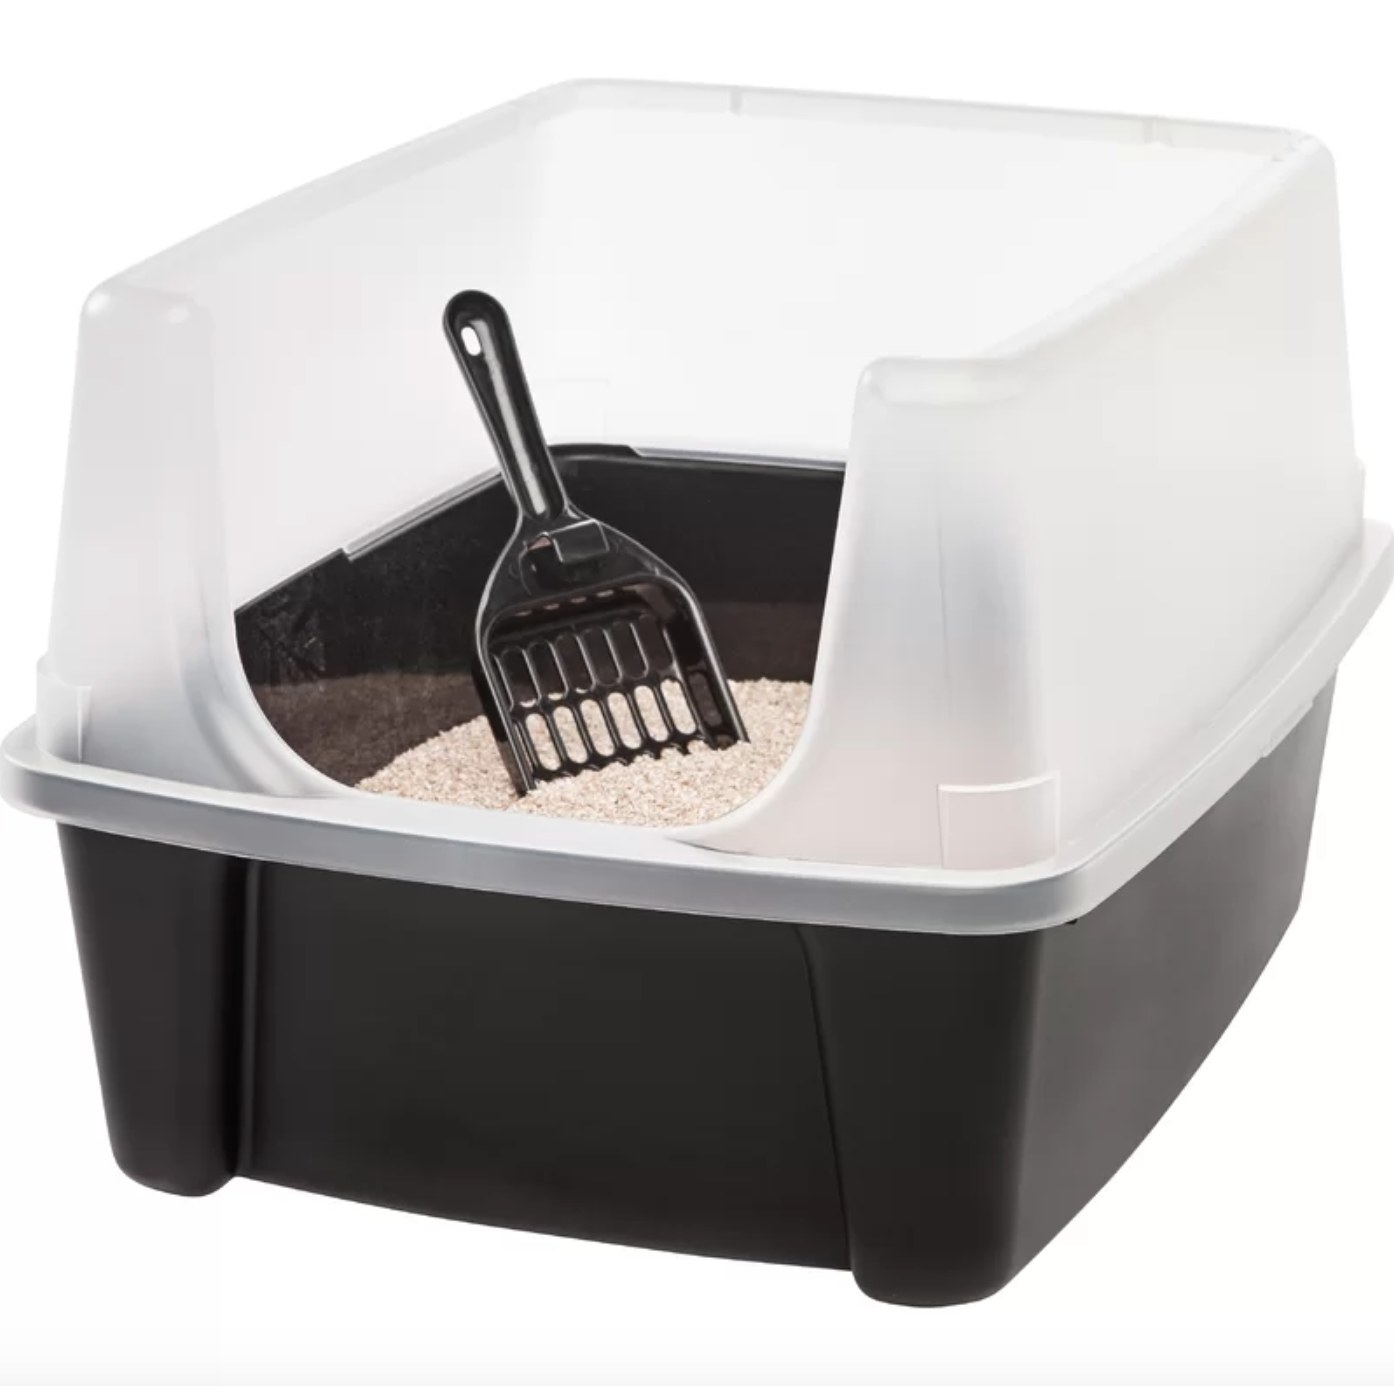 The standard litter box with a scoop in black